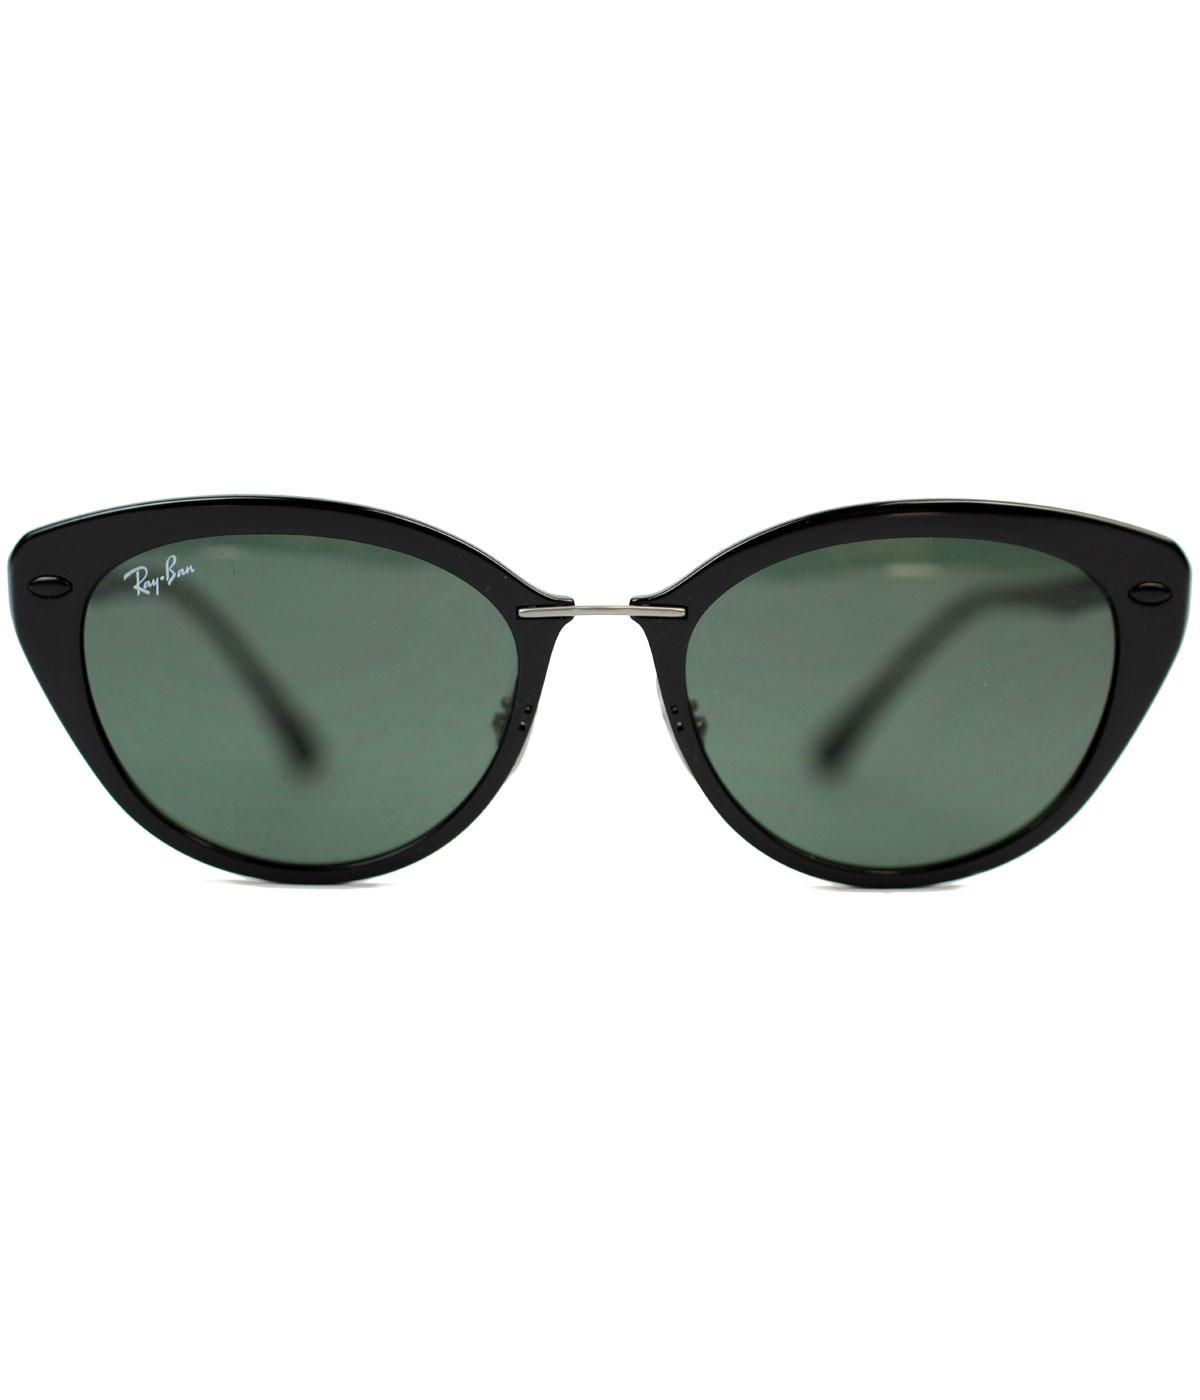 Catseye Tech RAY-BAN Retro Vintage 50s Sunglasses